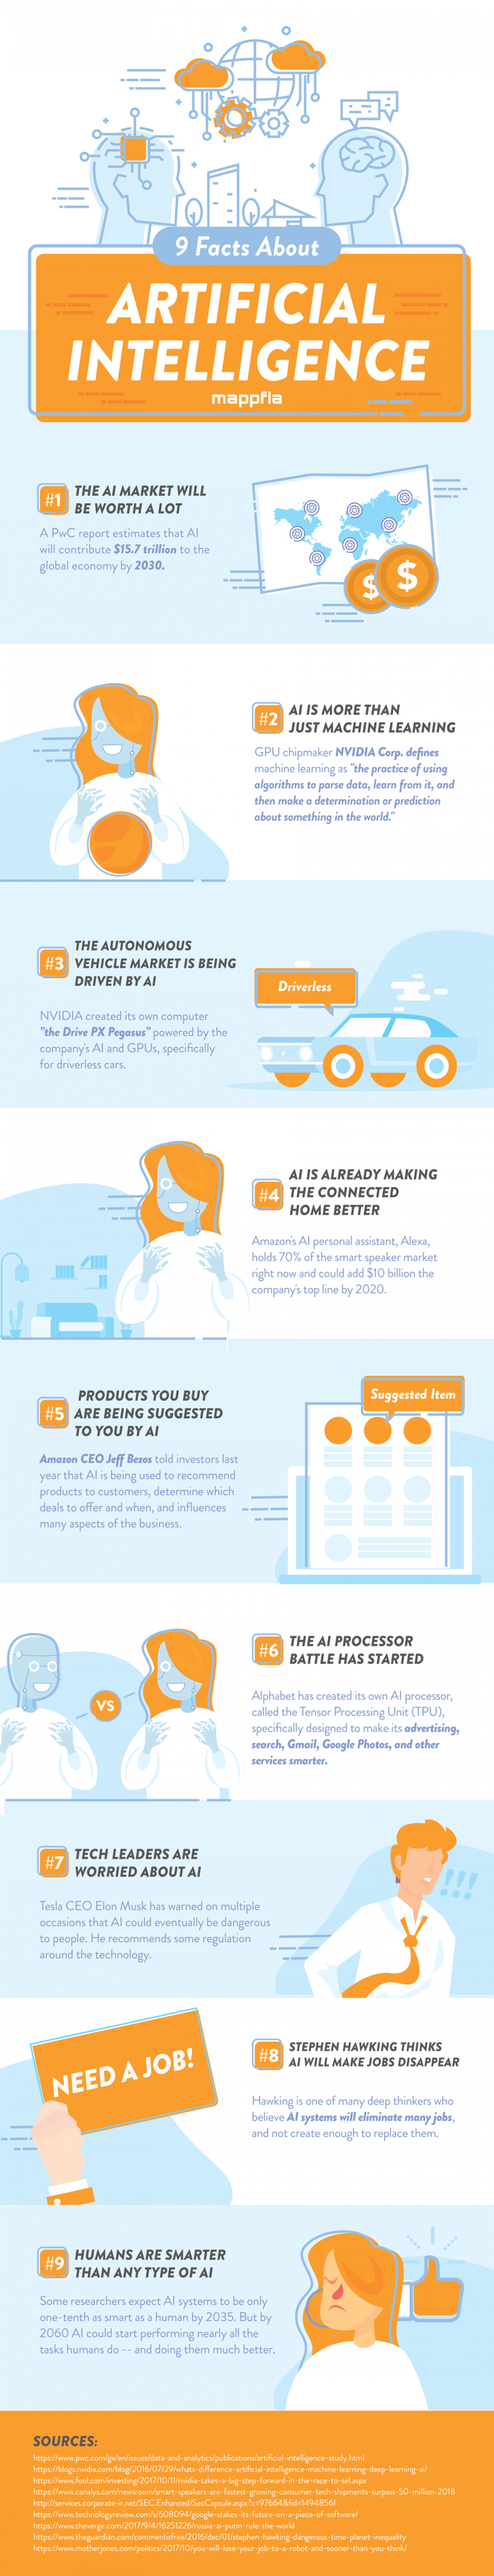 9 Facts About Artificial Intelligence Infographic